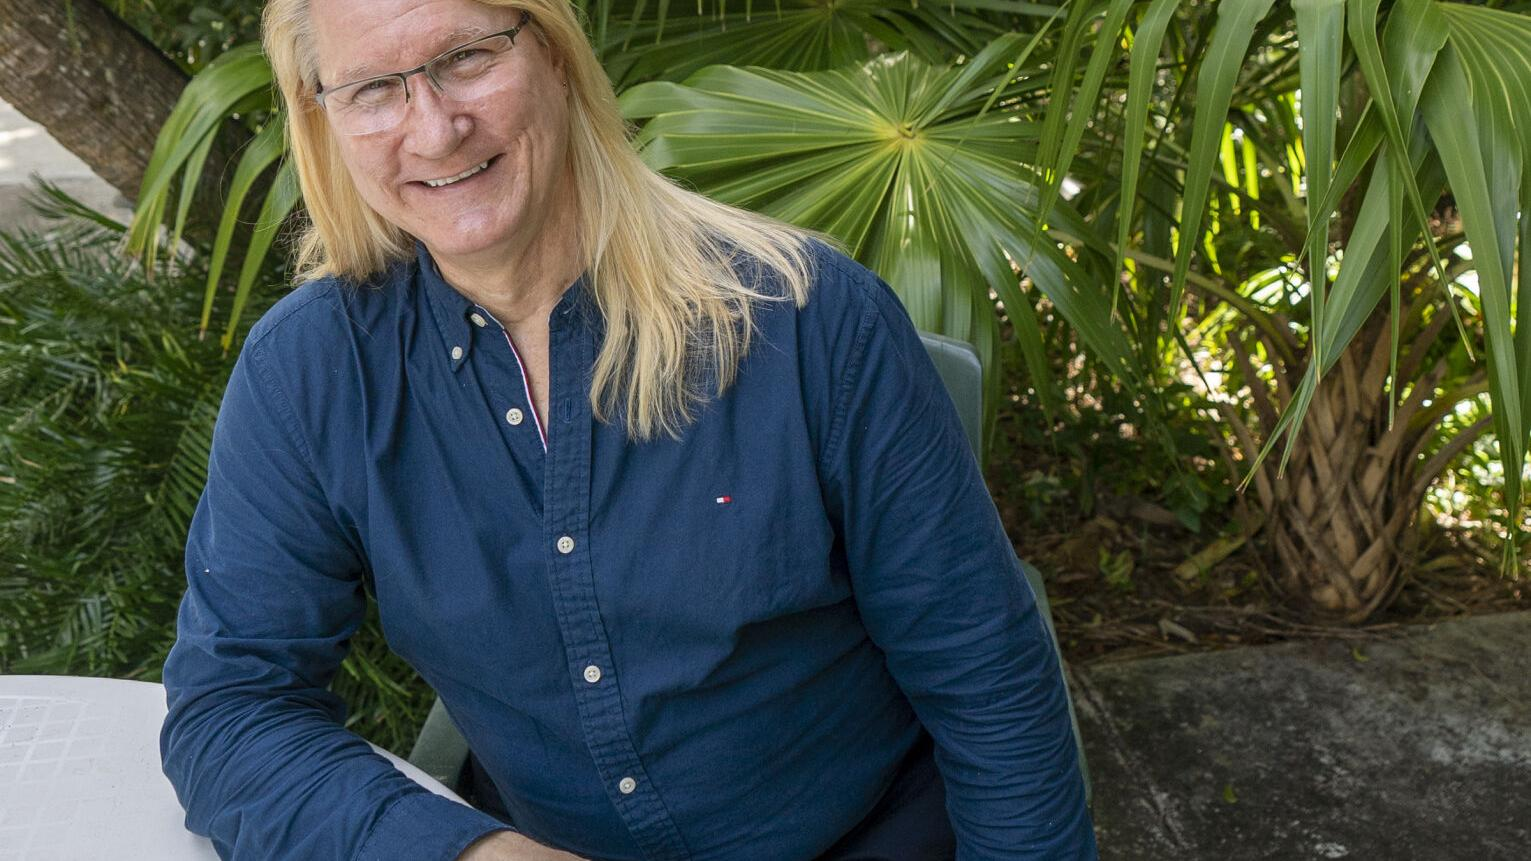 Misha McCrae grows into roles at Botanical Garden, on Tree Commission